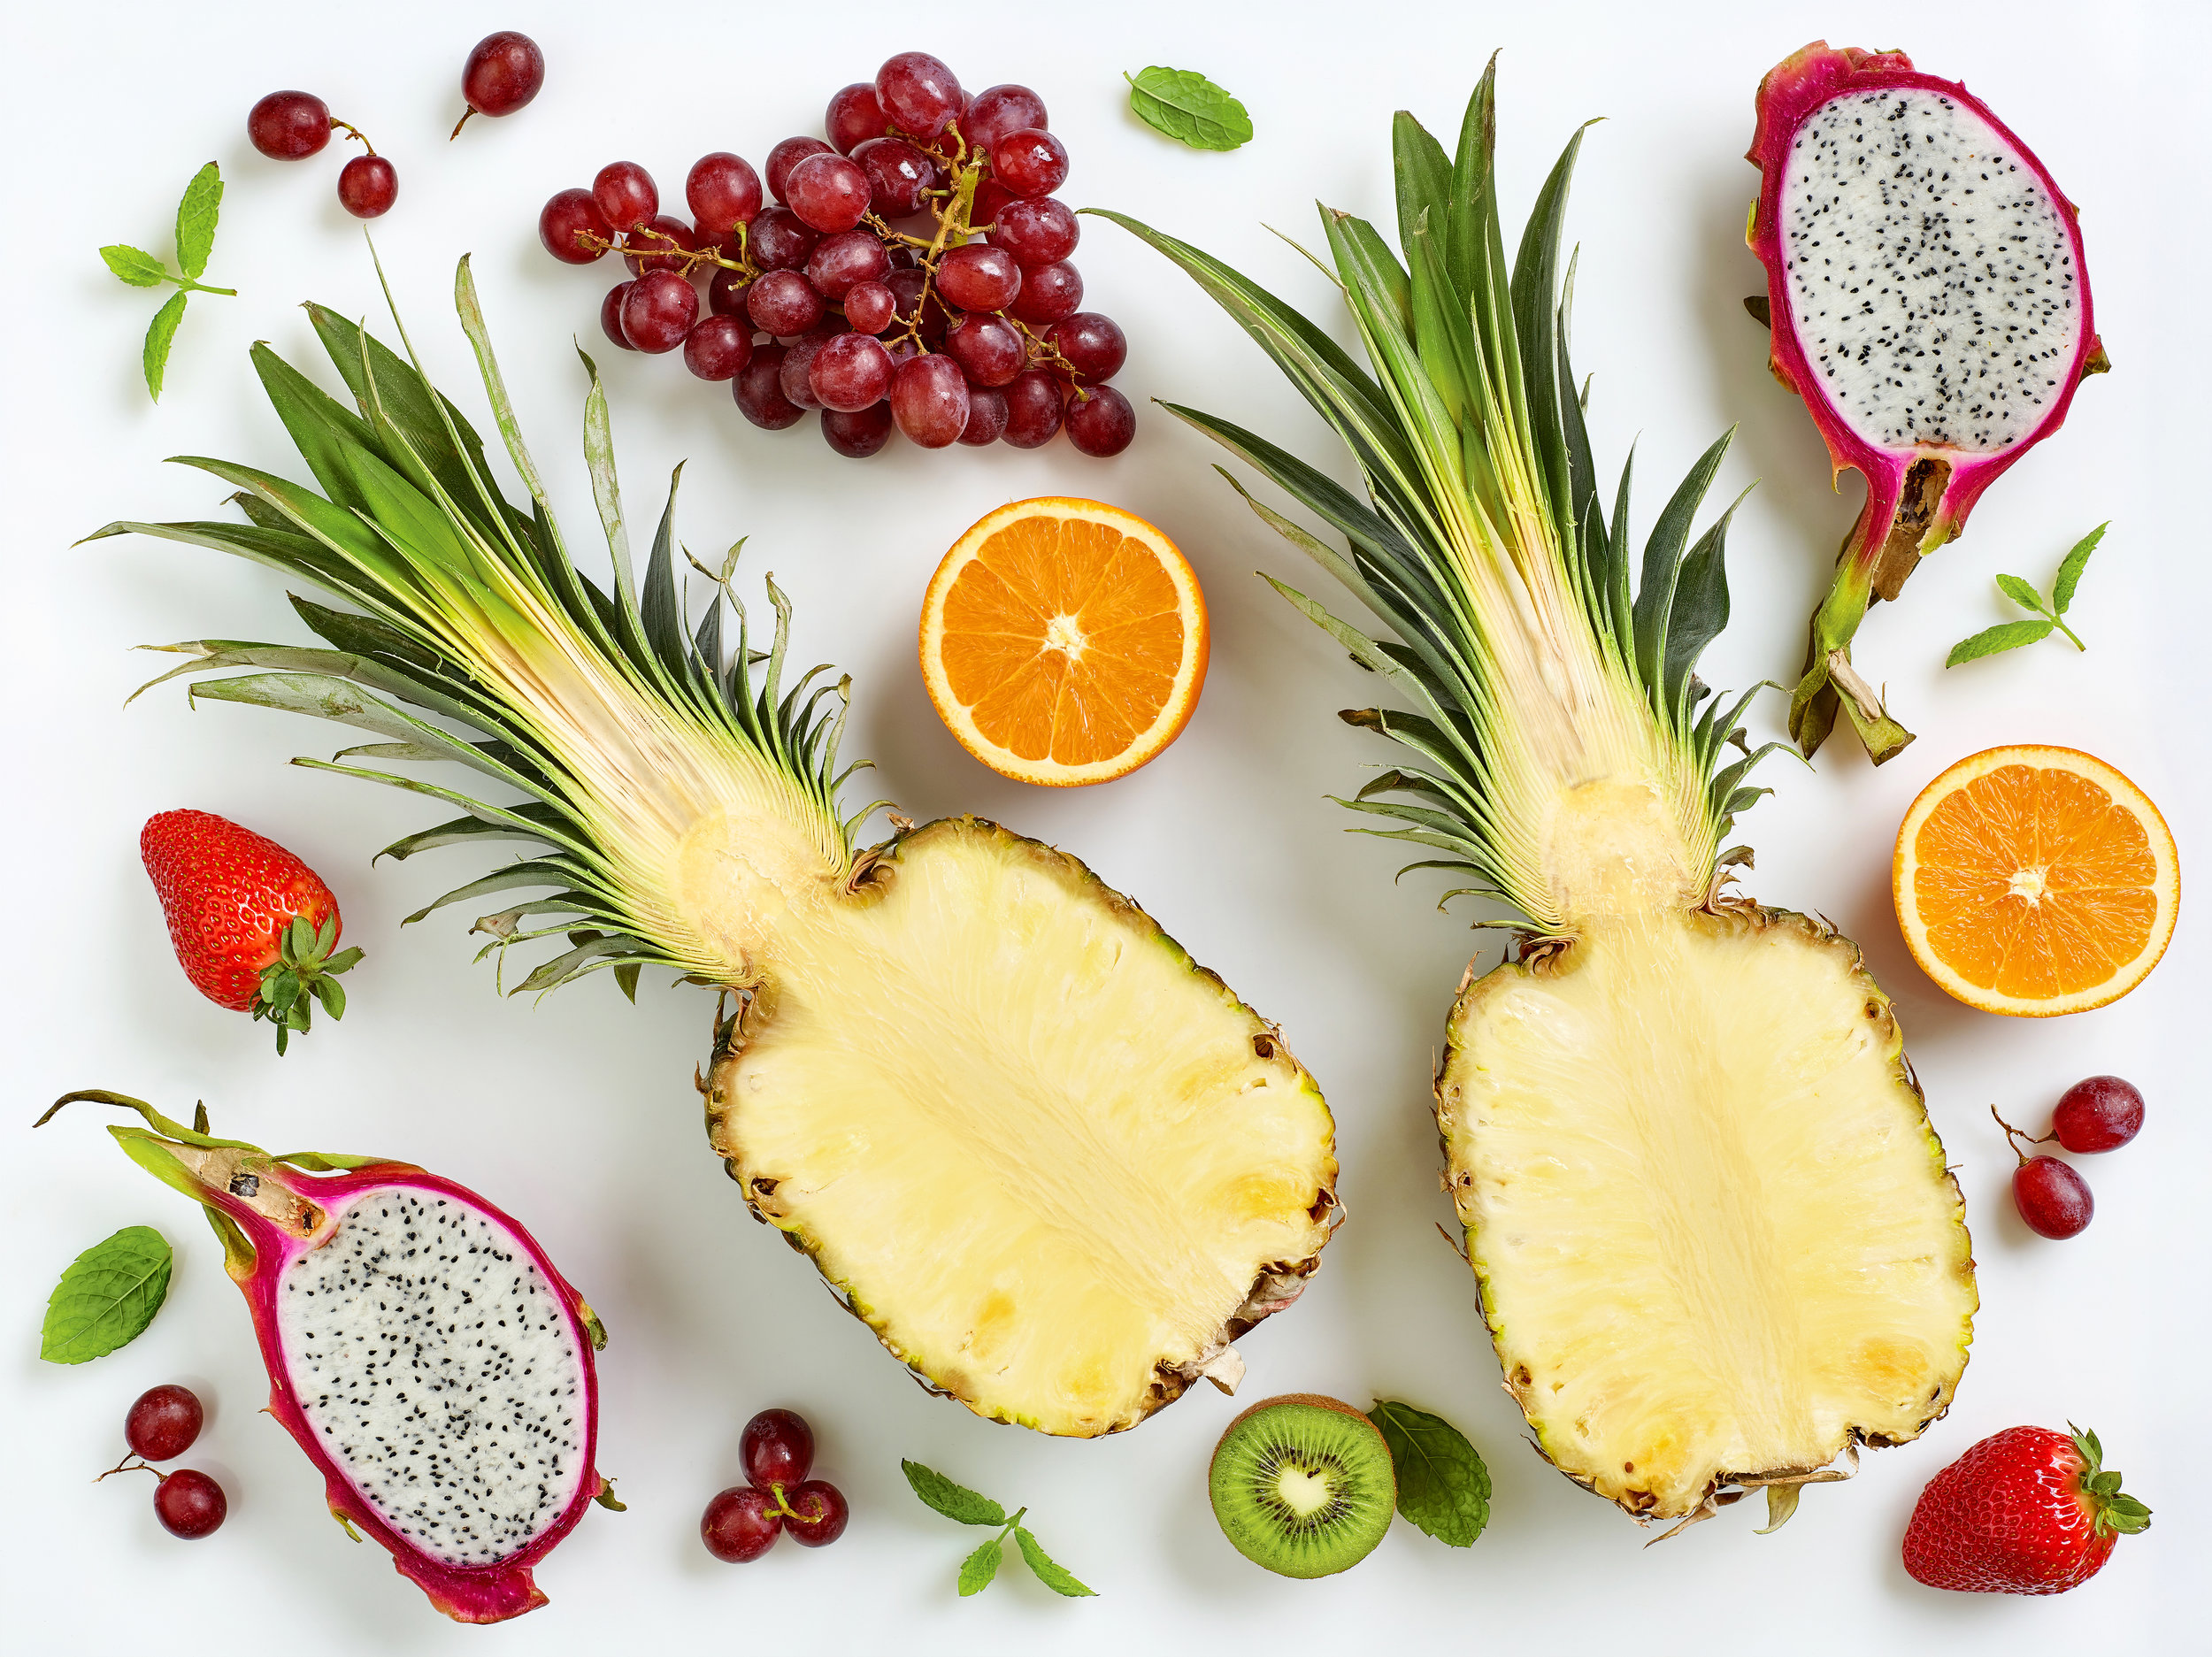 fresh-fruits-composition-PATB66Y.jpg